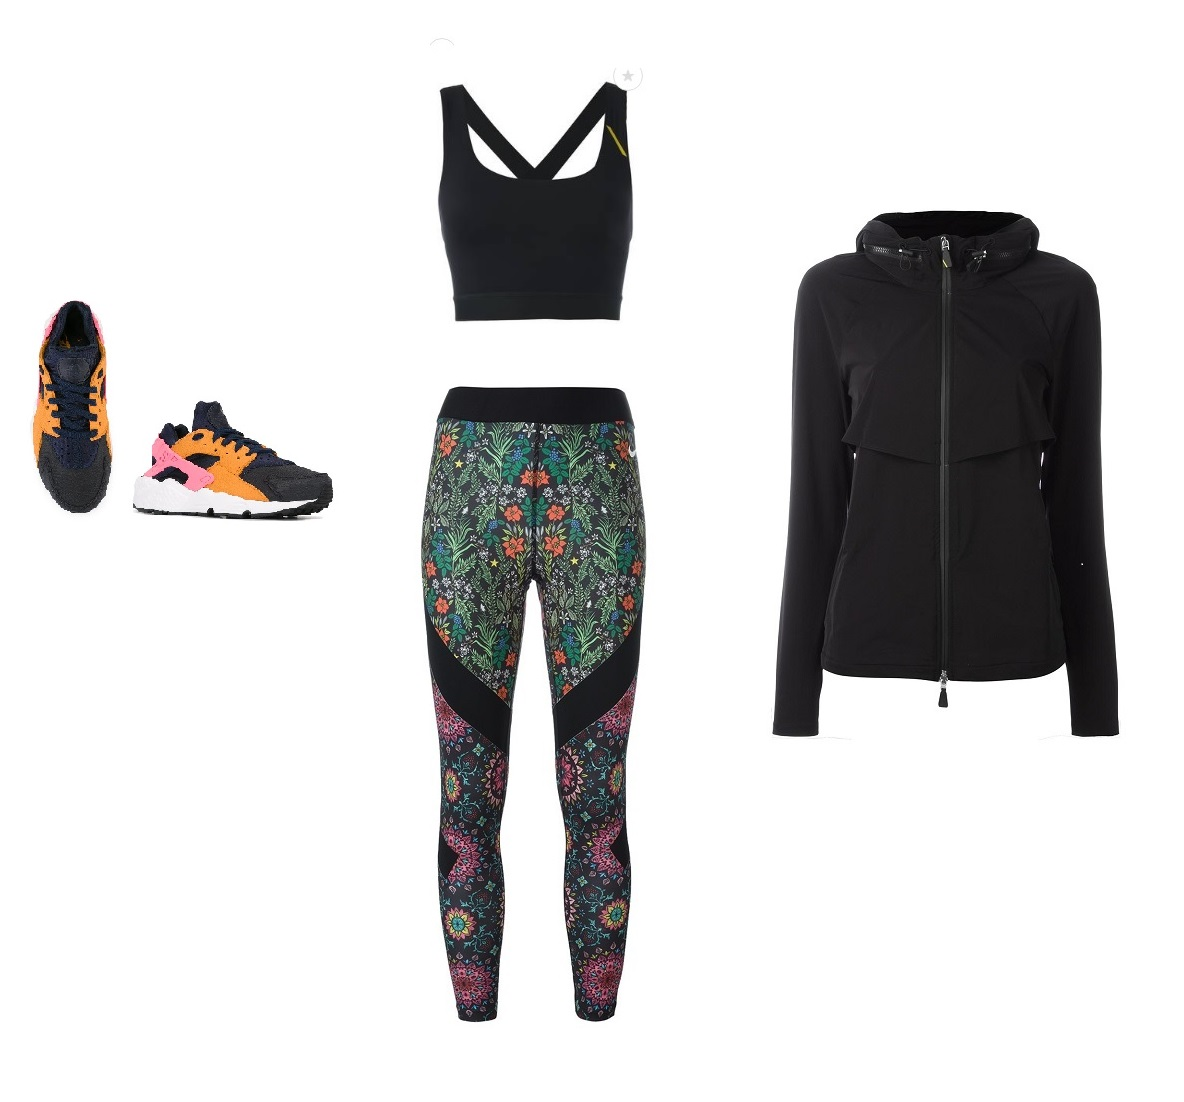 FARFETCH ACTIVEWEAR OUTFIT NR 1